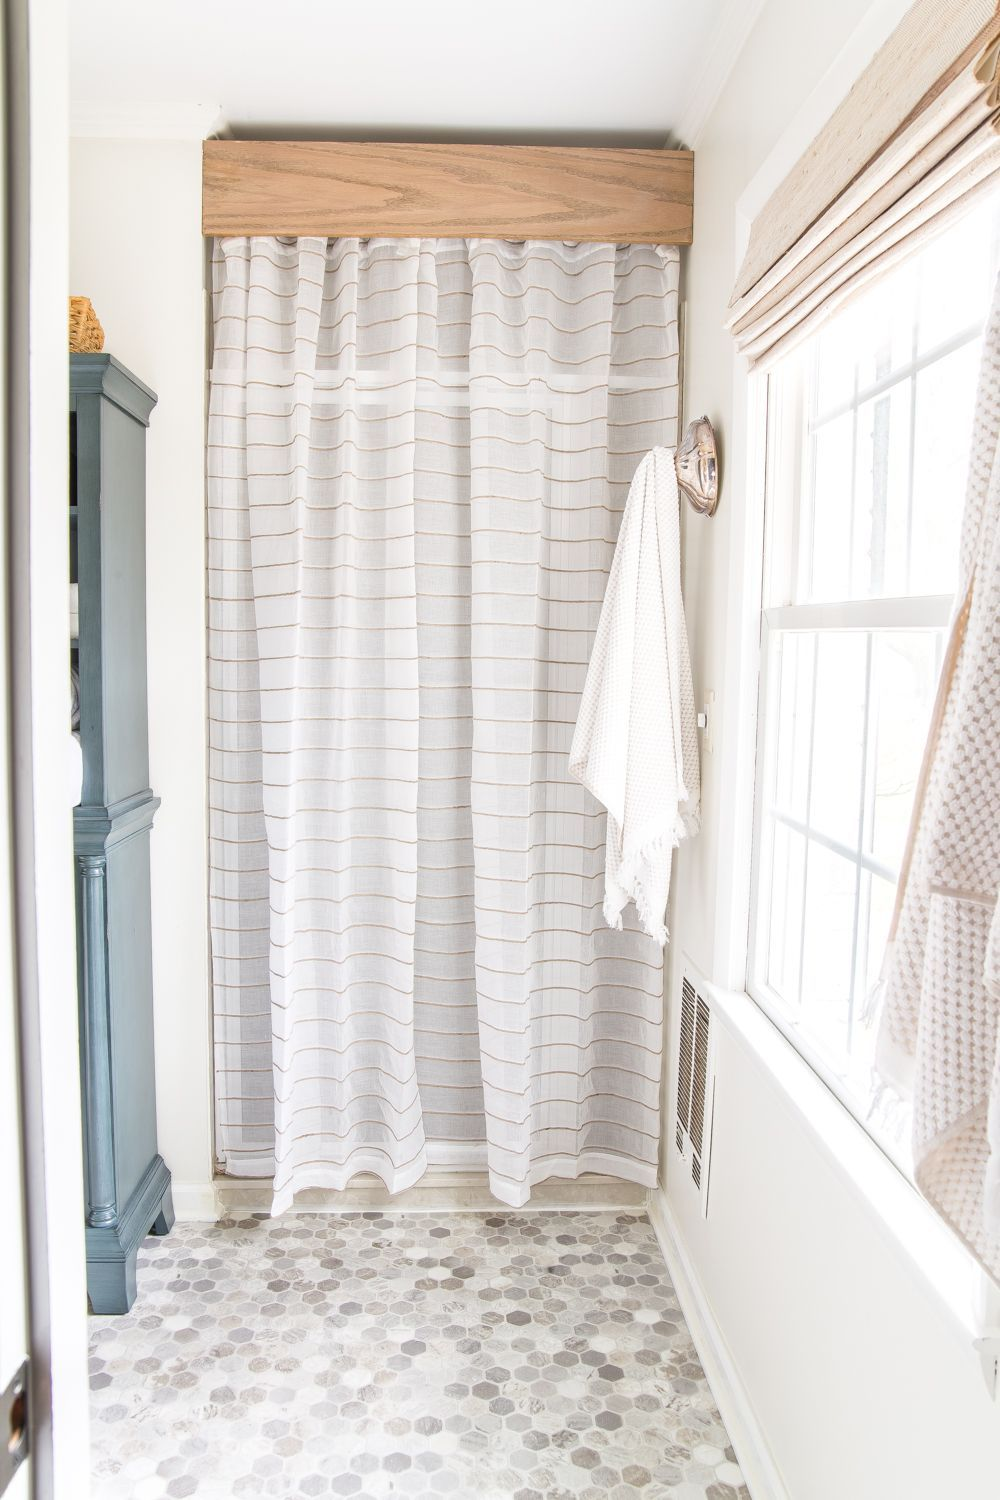 Budget Master Bathroom Refresh Reveal Old Shower Door Cover Up With A Semi Sheer Curtain And A D Master Bathroom Refresh Shower Doors Budget Bathroom Remodel